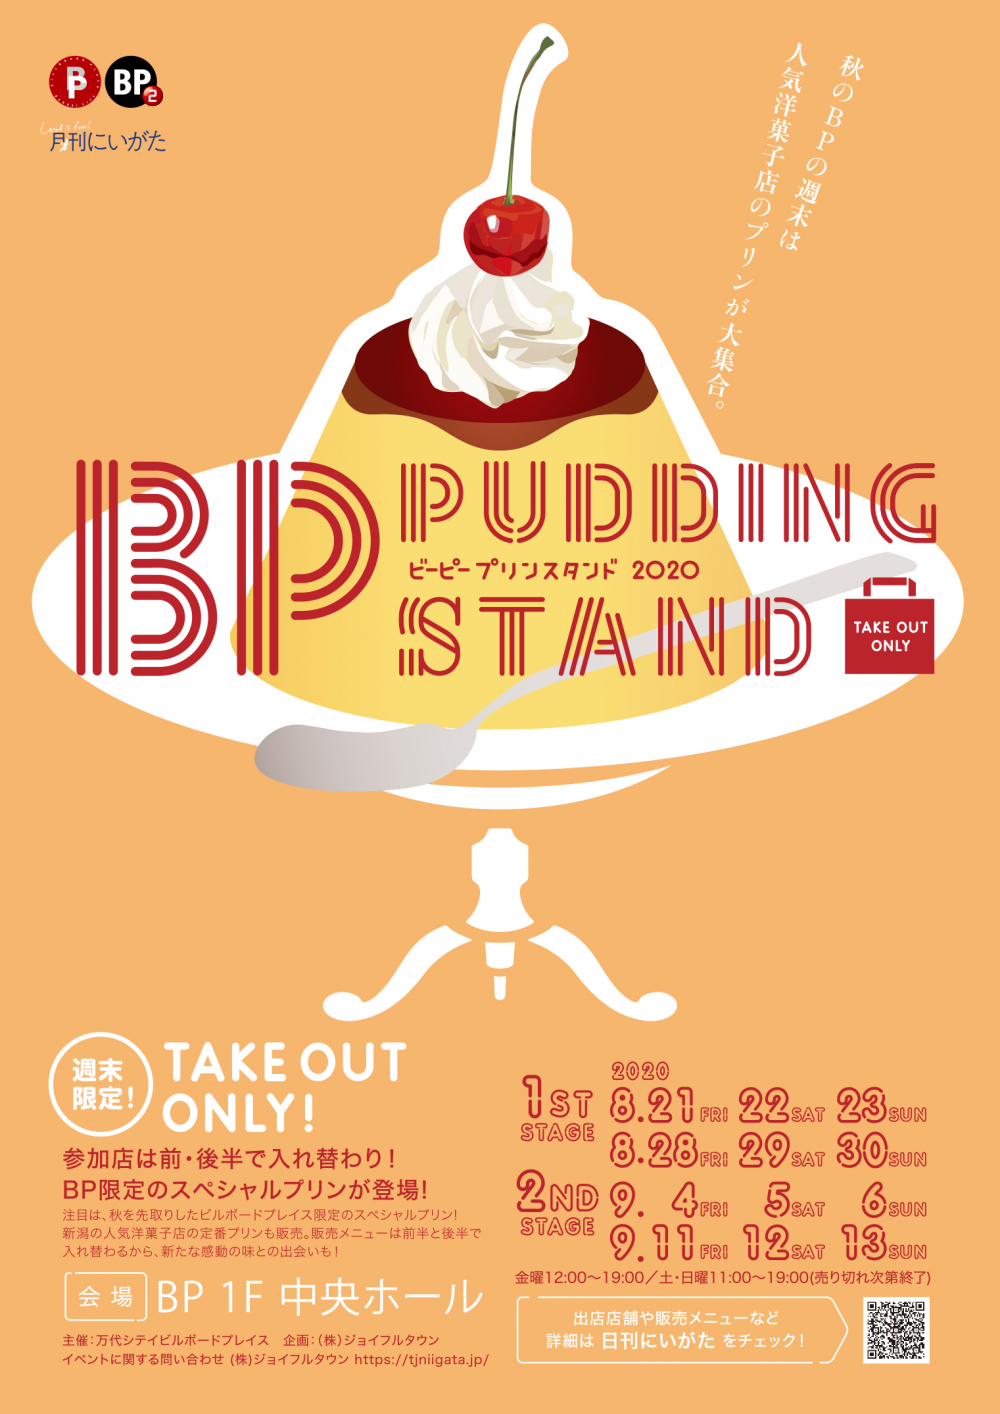 BP PUDDING STAND